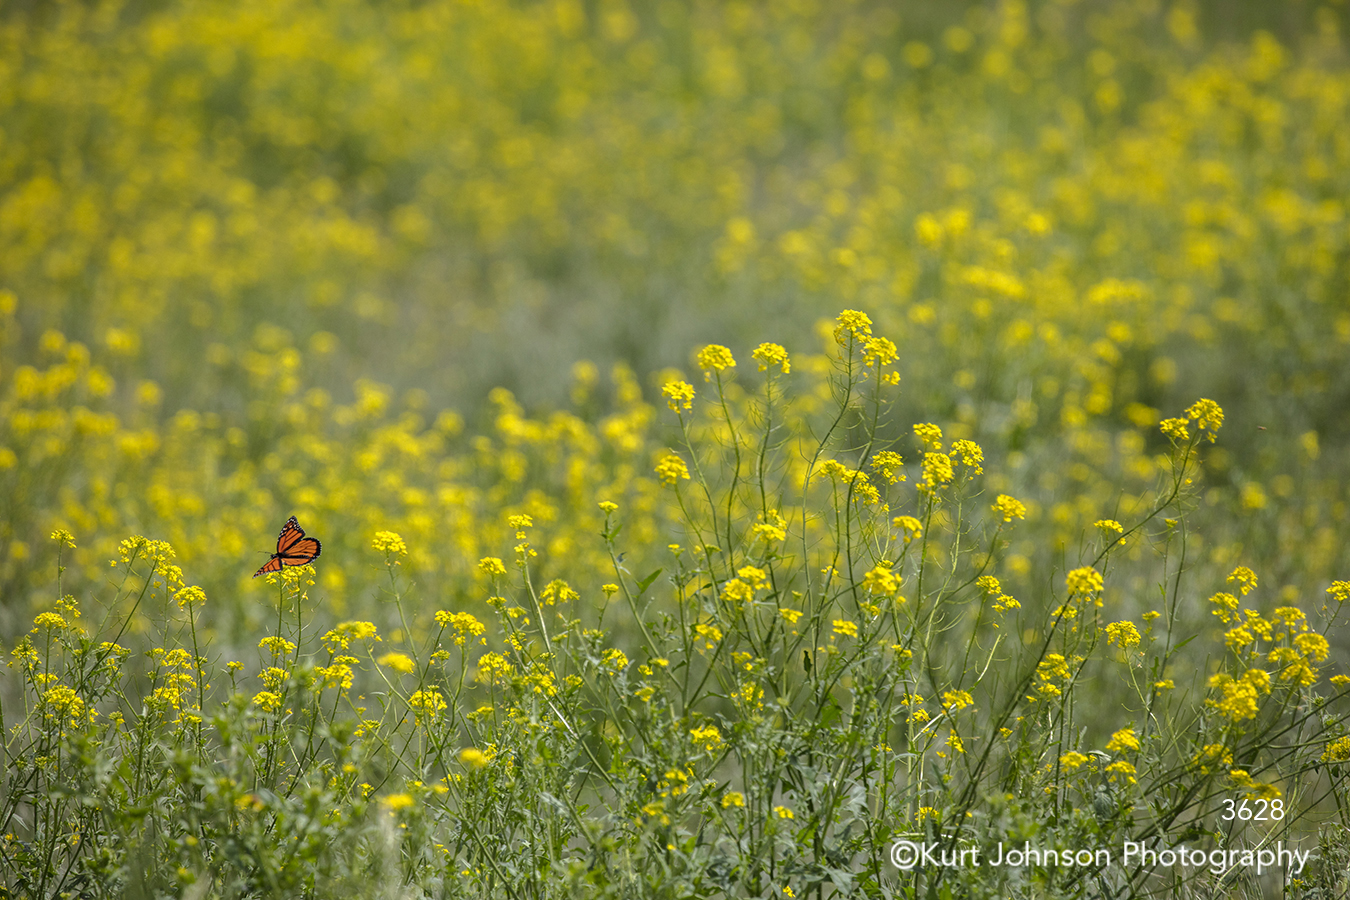 yellow grass grasses butterfly wildlife insect green meadow field landscape flowers